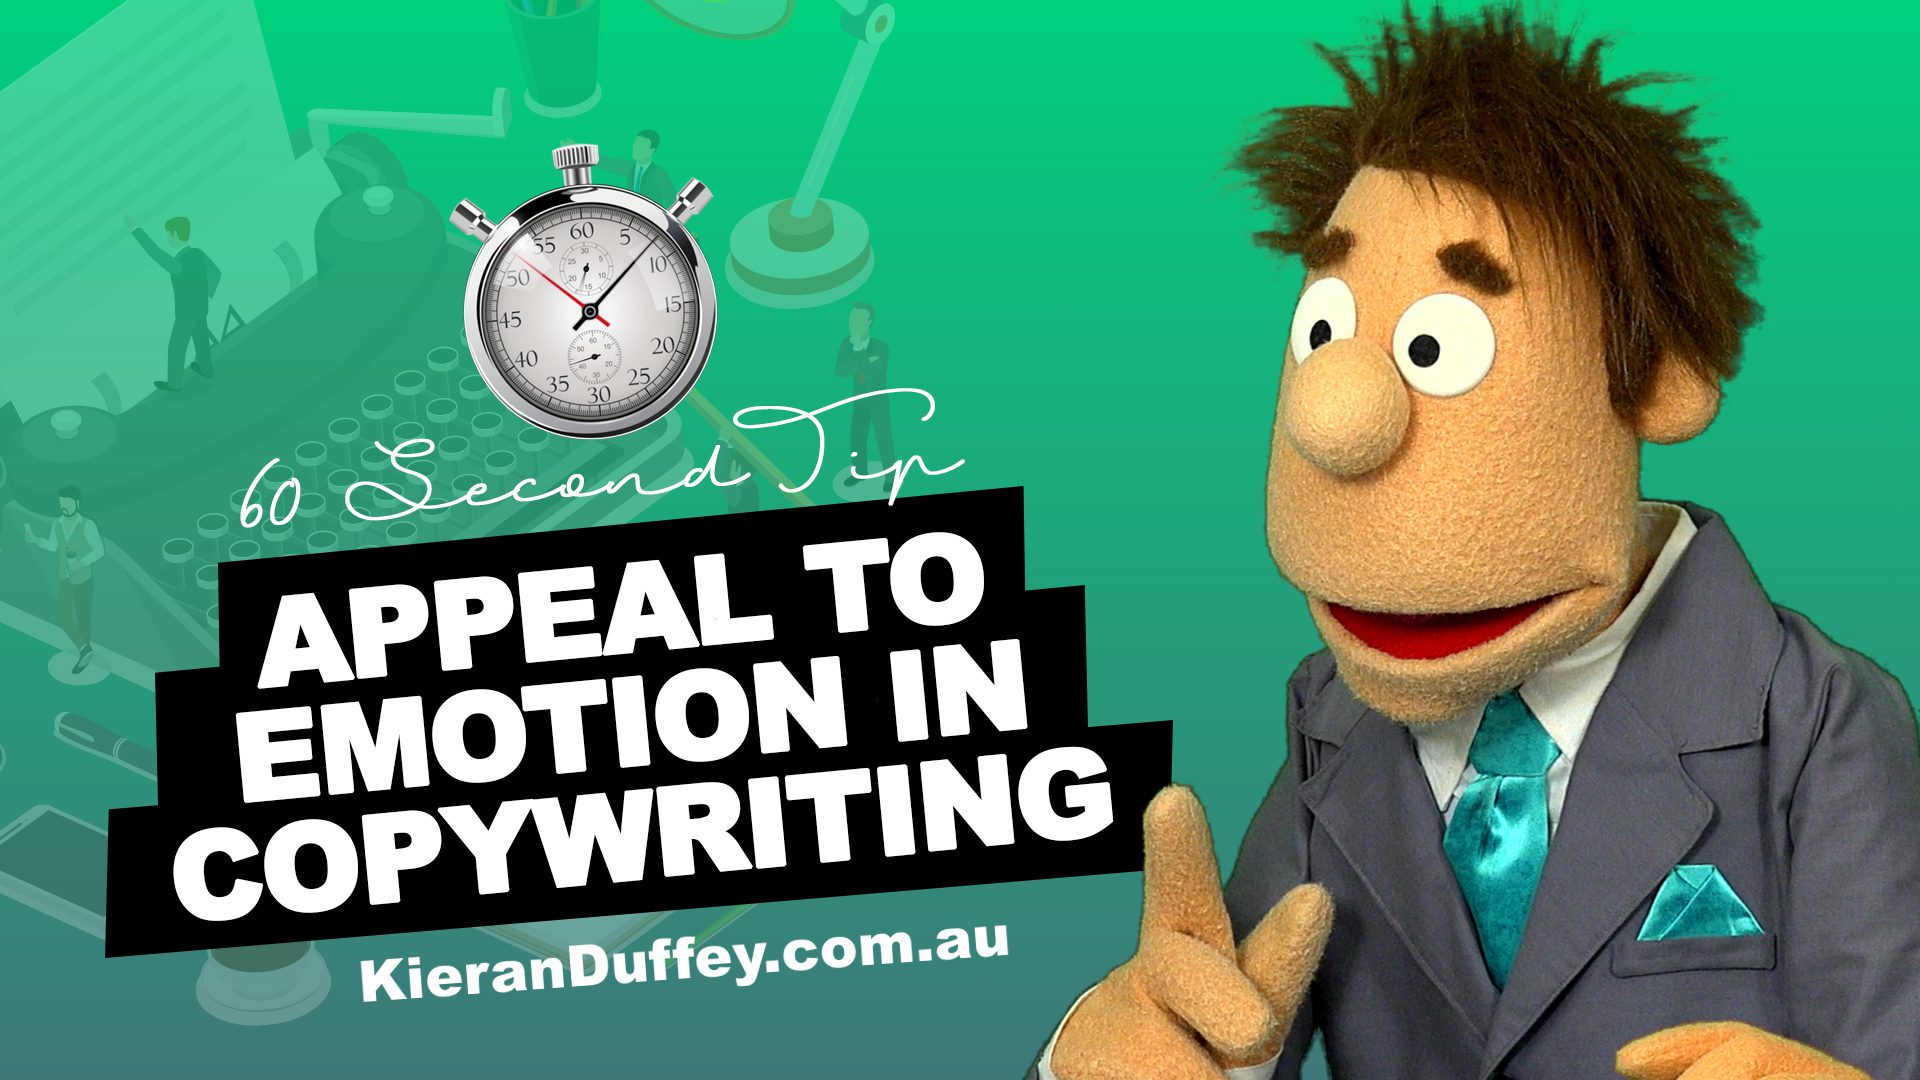 Video explaining importance of appealing to emotion in copywriting